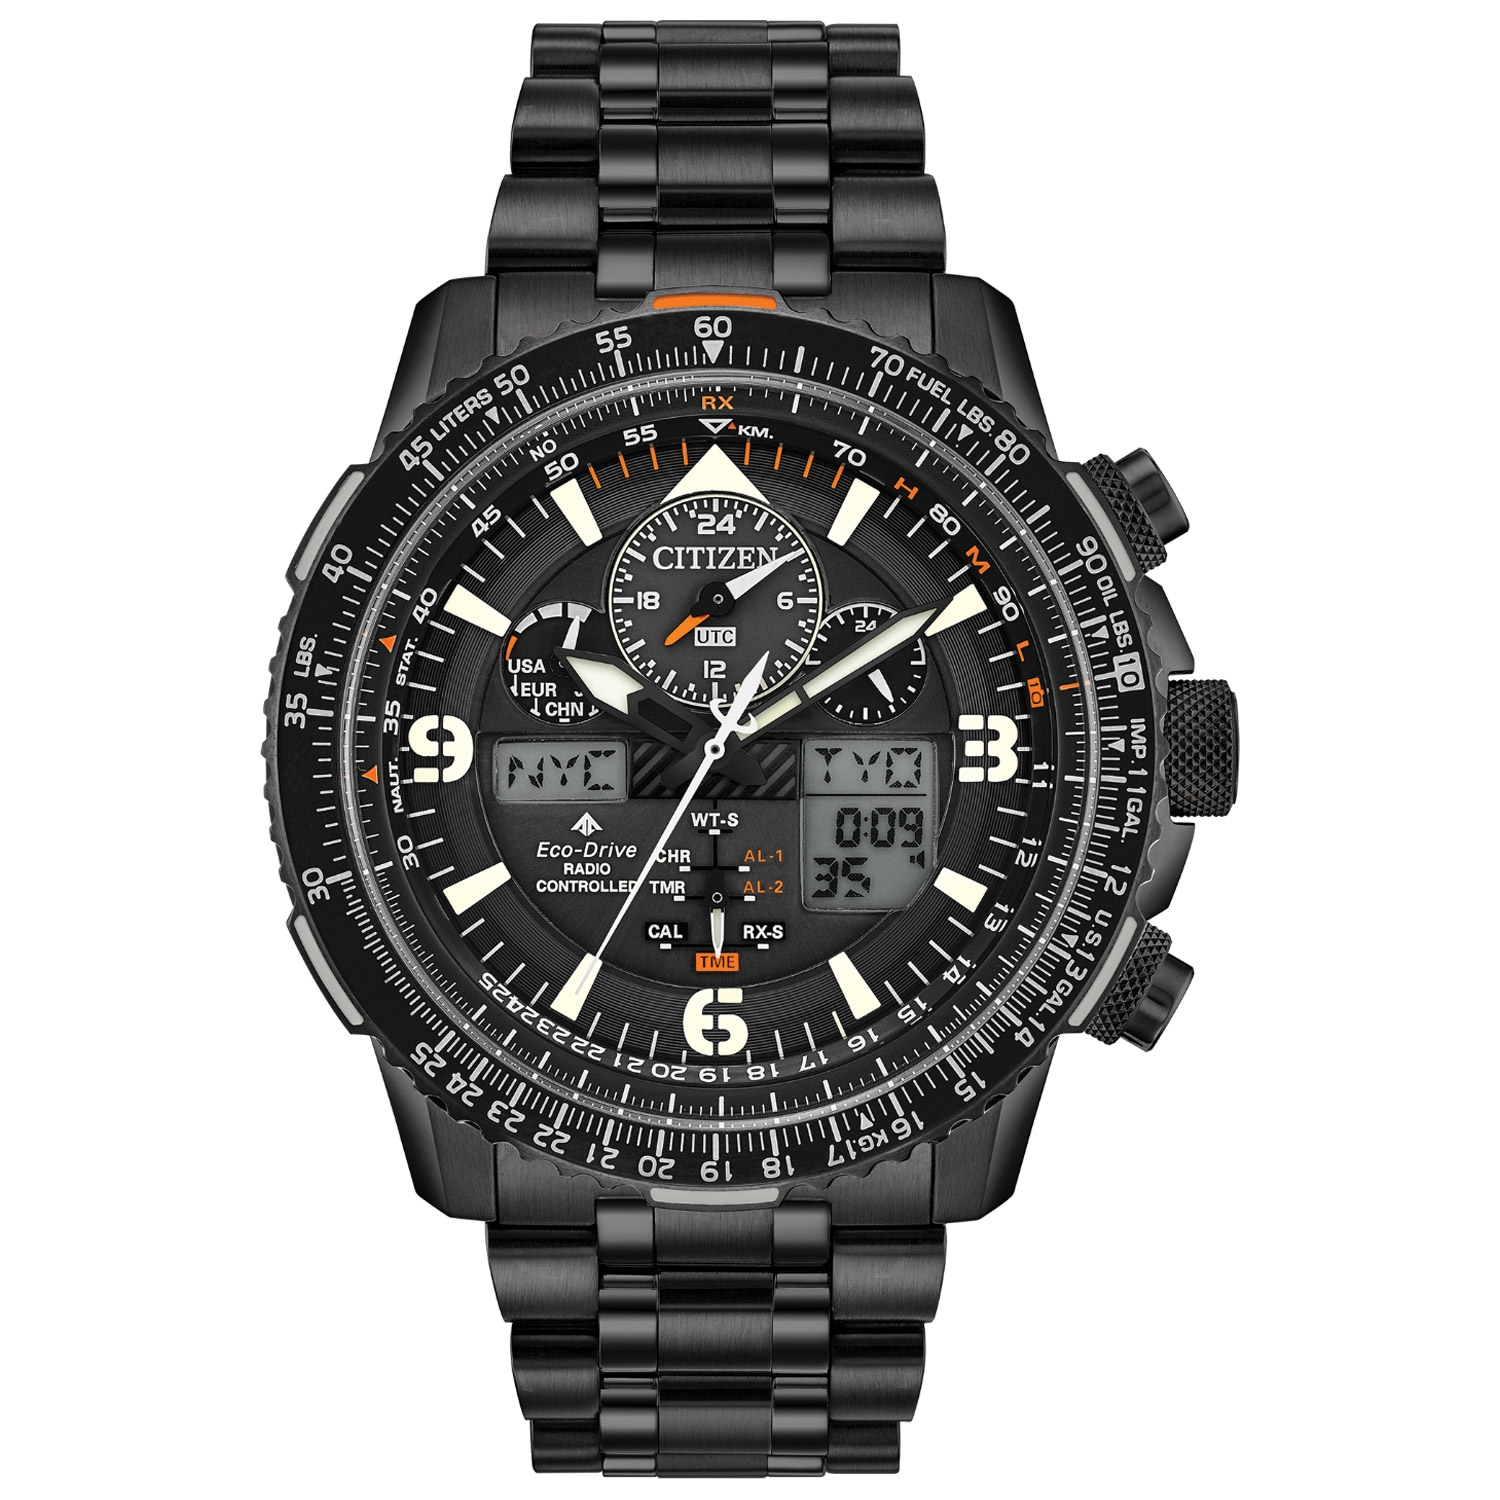 JY8075-51E Citizen Promaster Skyhawk A-T Eco-Drive Mens Watch